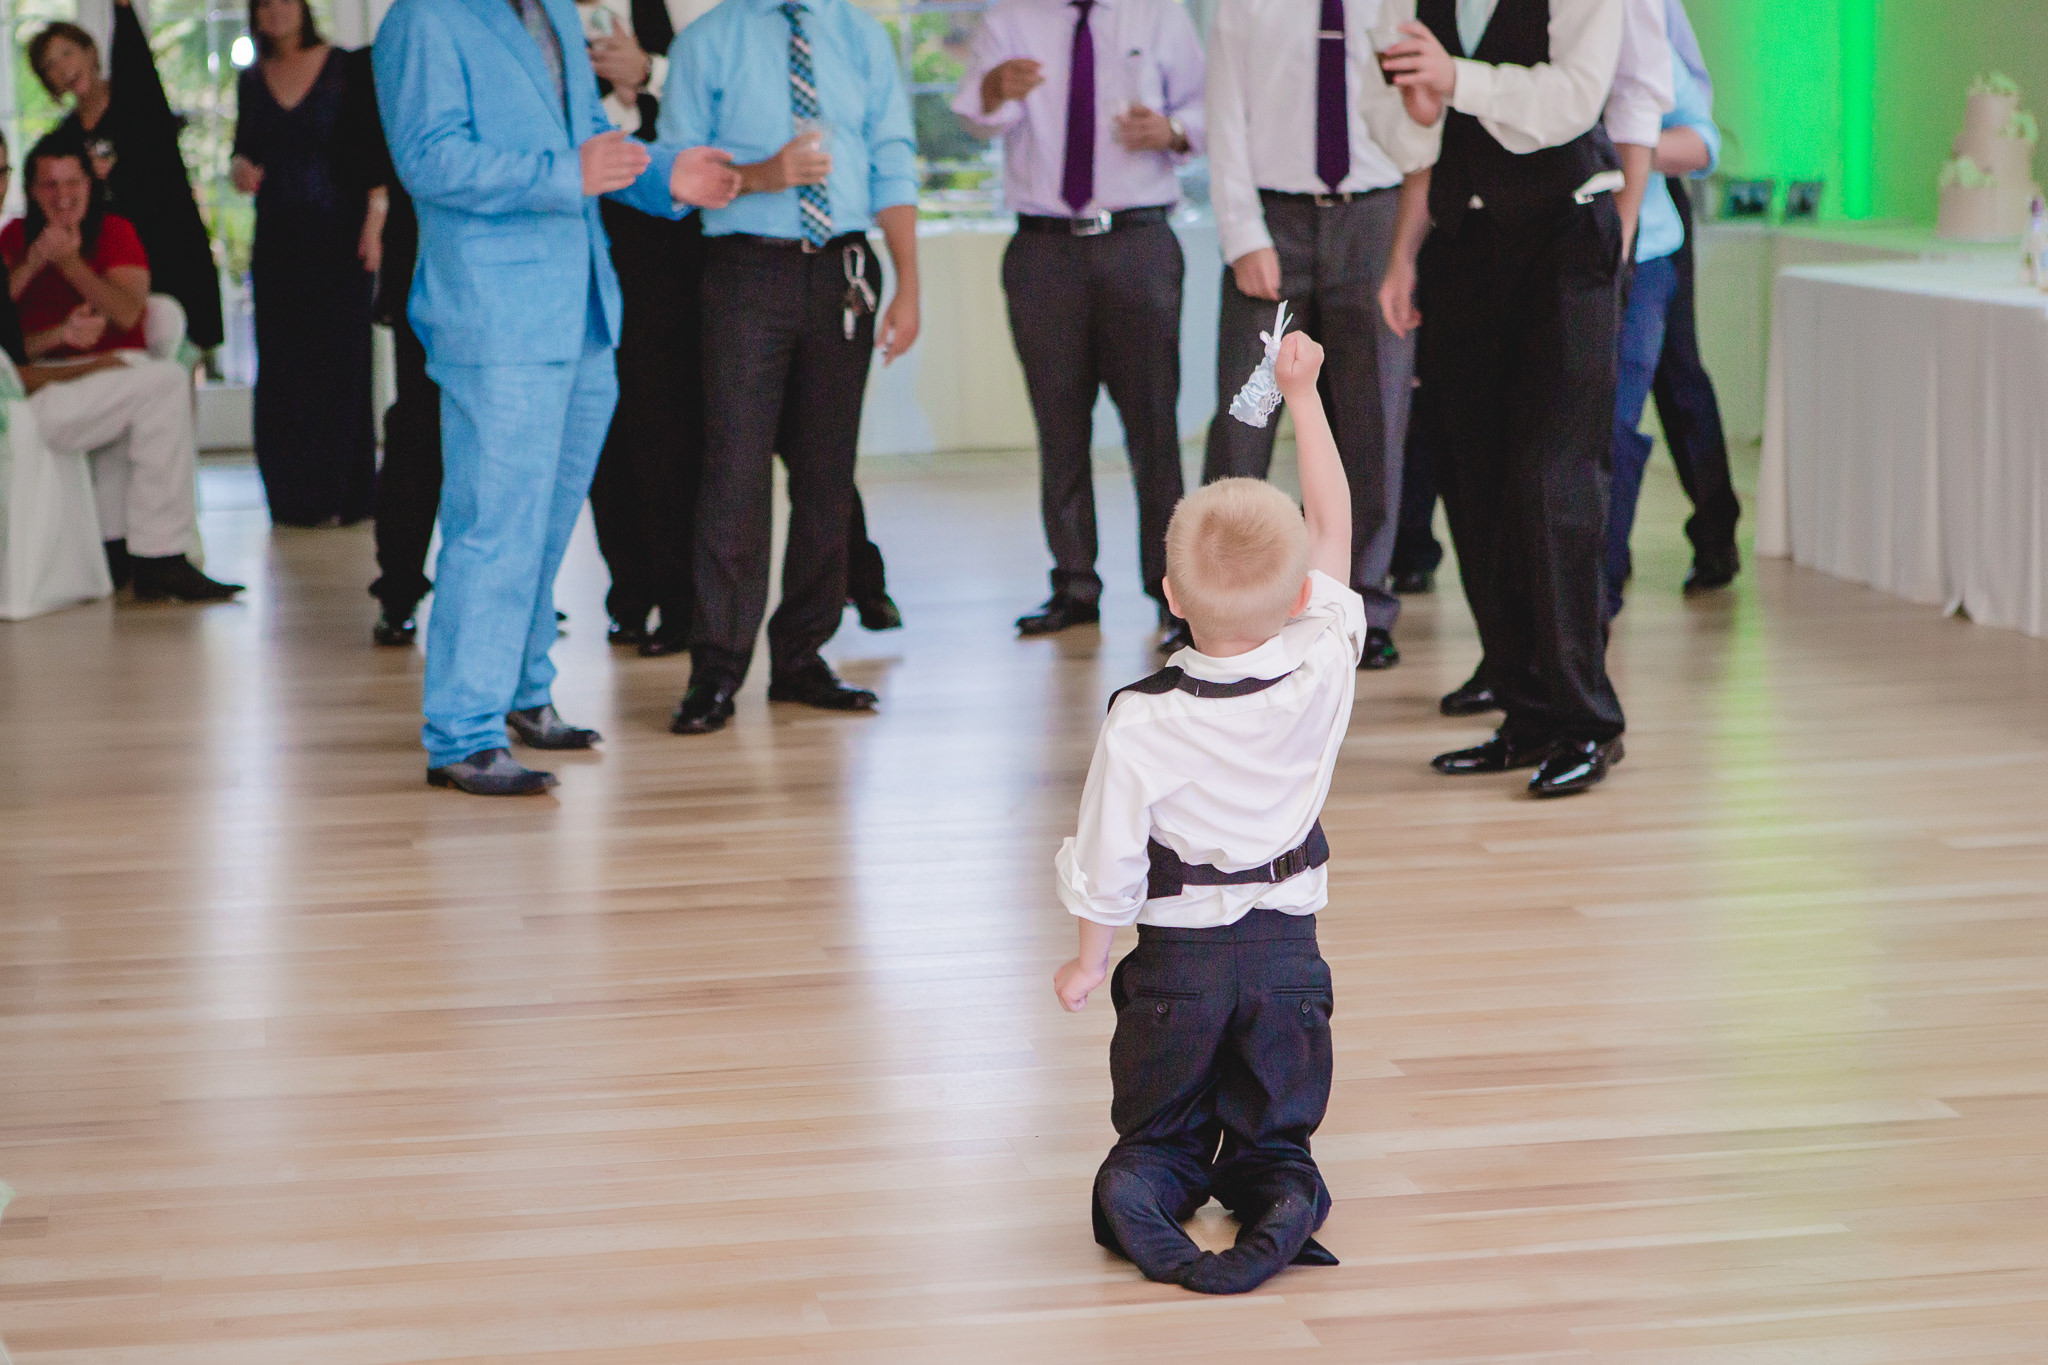 Ring bearer catches the garter at a wedding reception